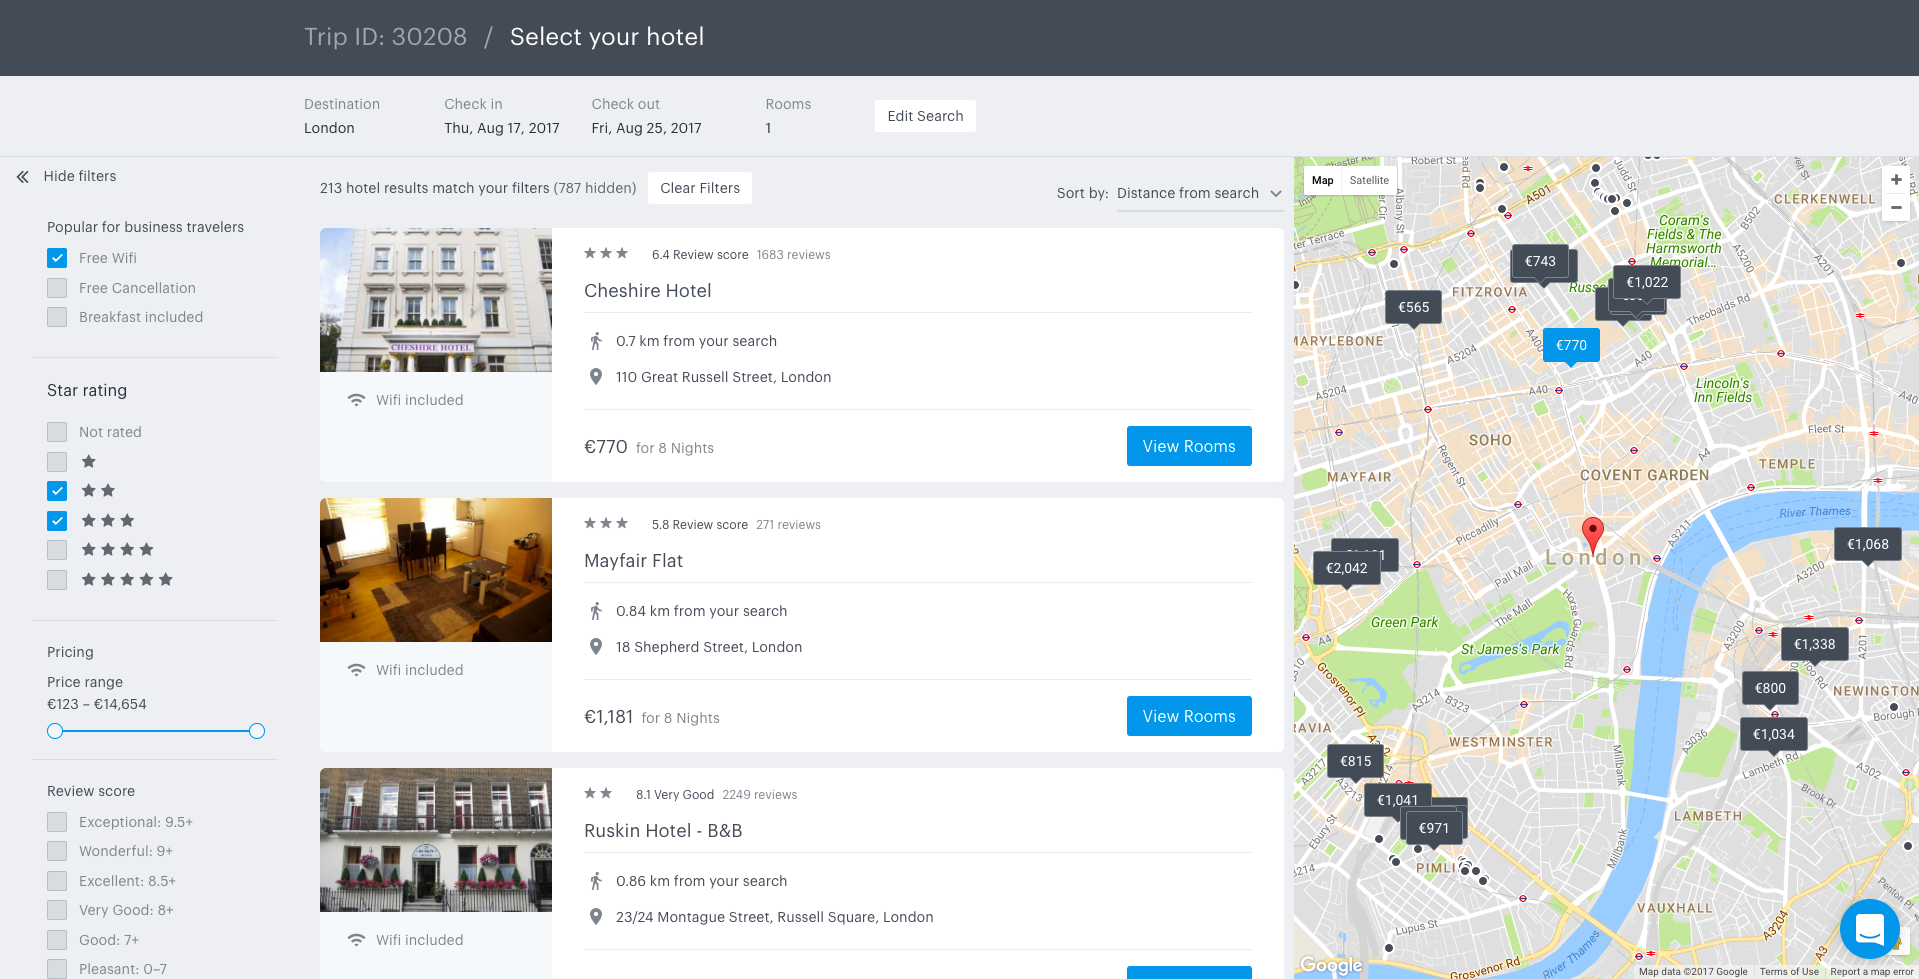 View hotel search results and locate them on a map